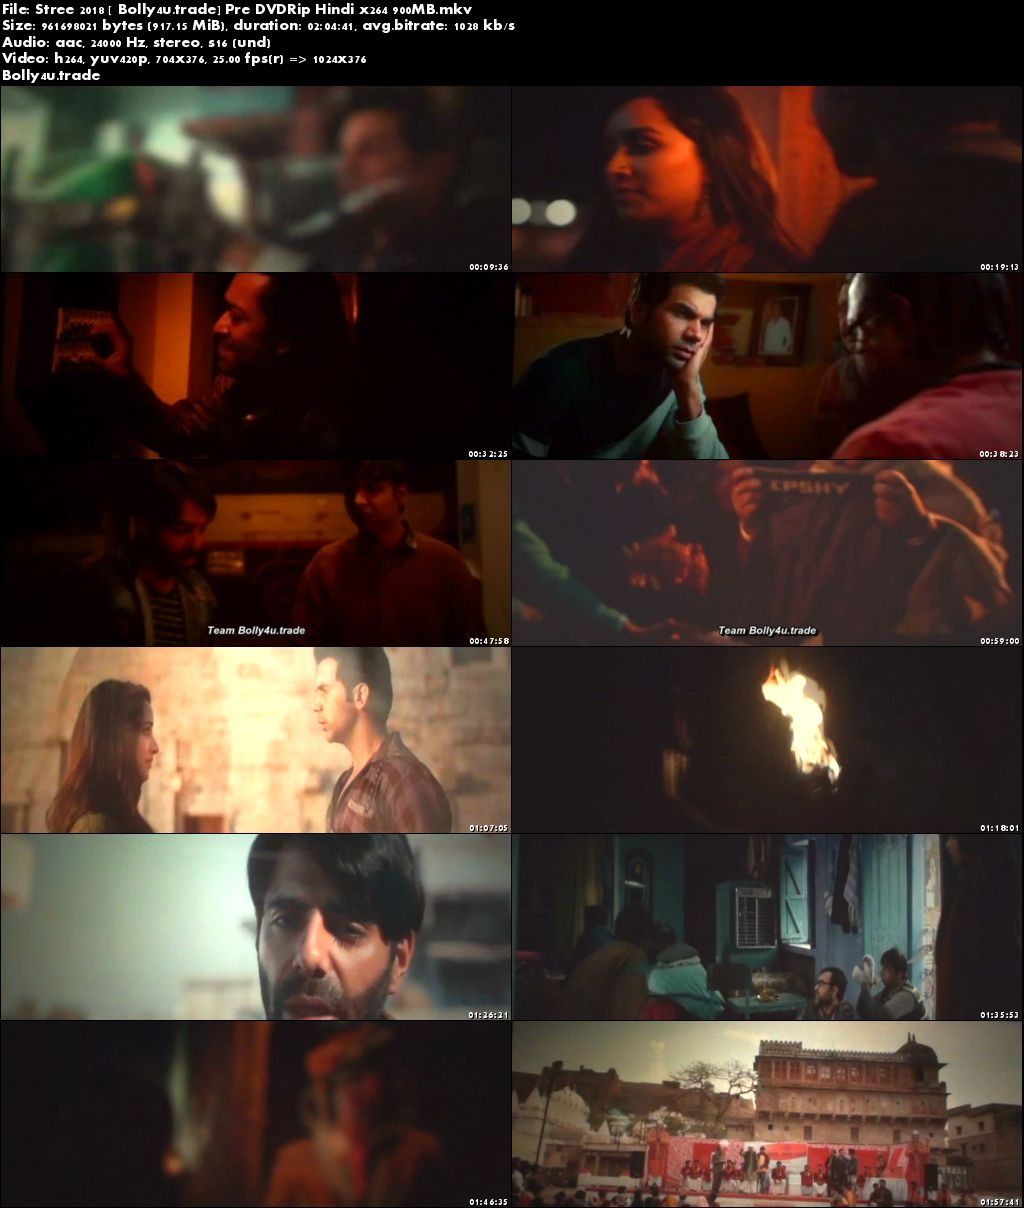 Stree 2018 Pre DVDRip 350Mb Full Hindi Movie Download 480p